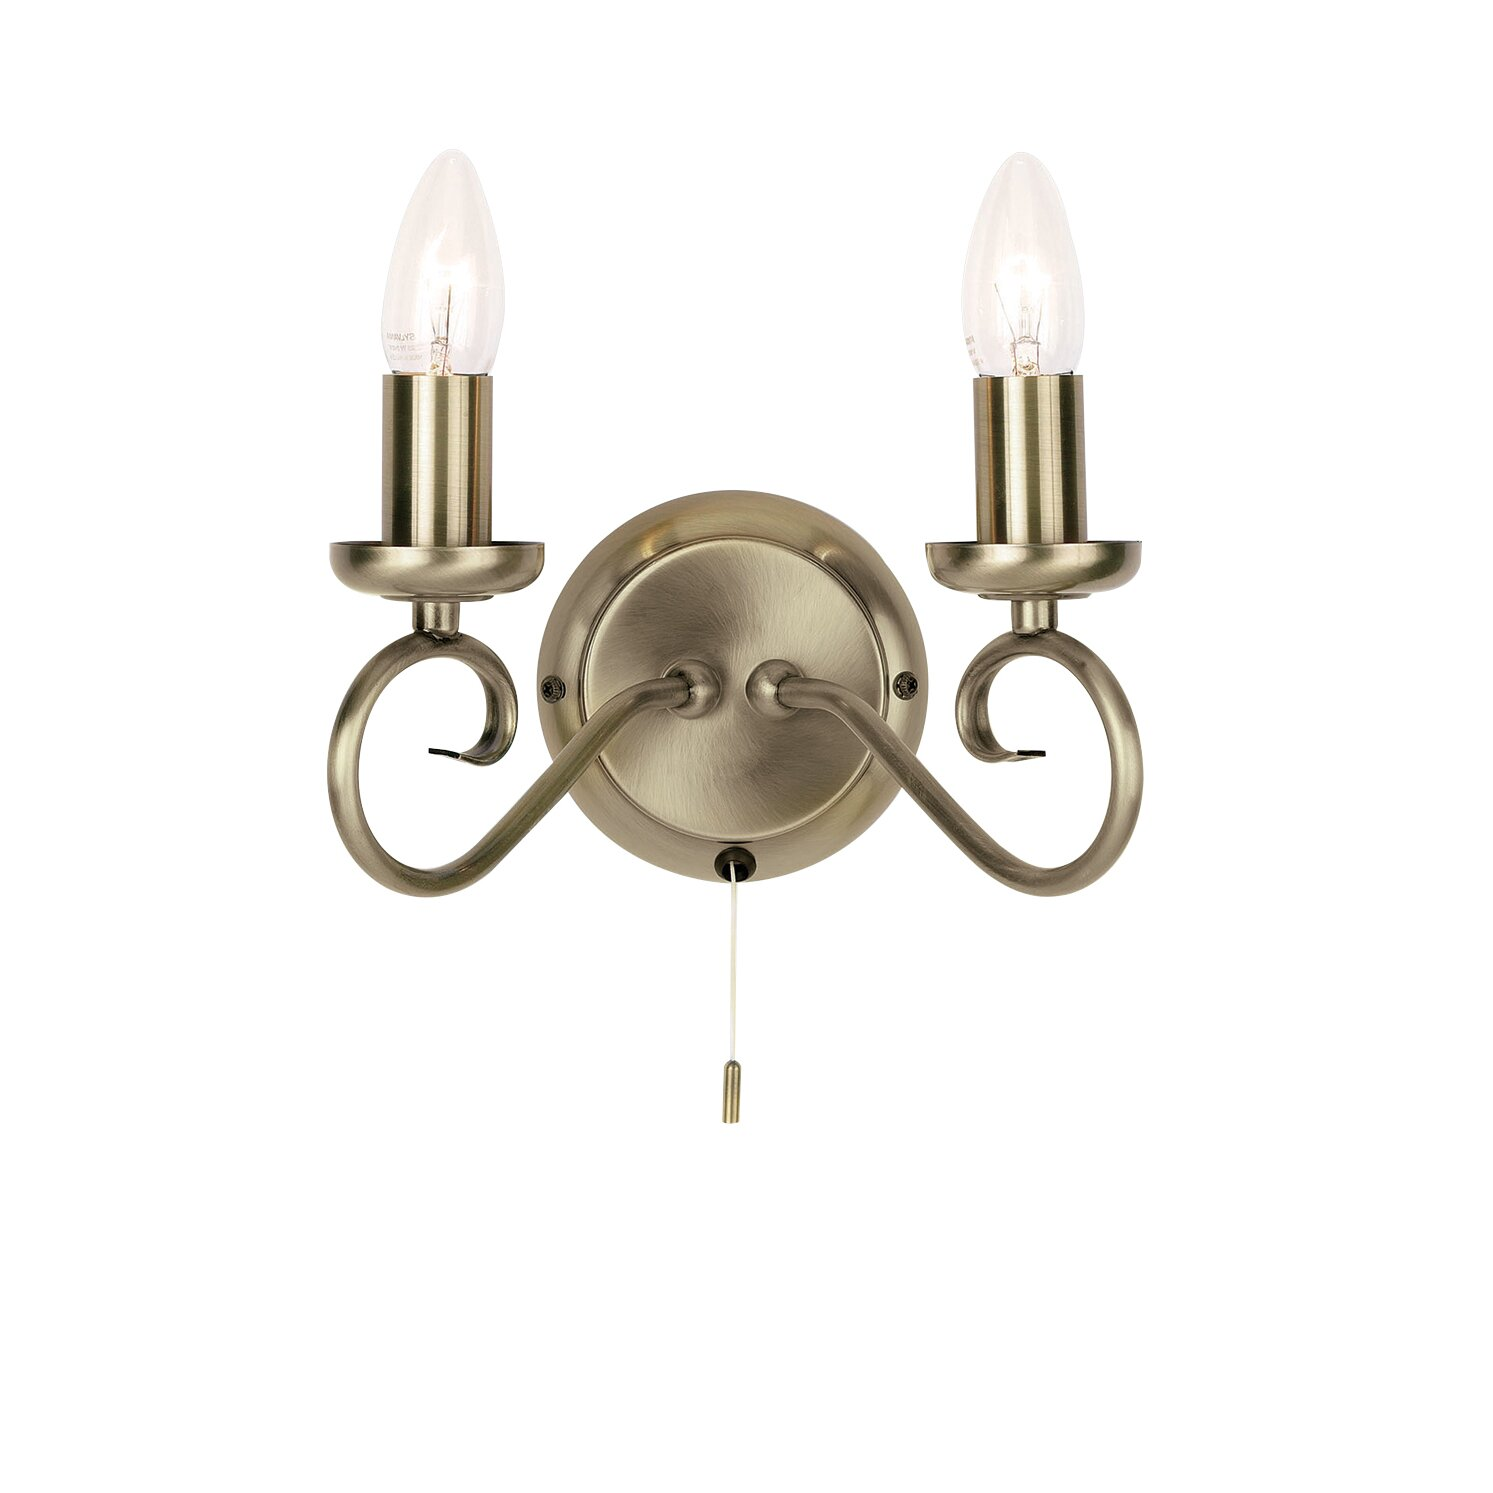 Wall Candle Light : Endon Lighting 2 Light Candle Wall Light & Reviews Wayfair UK